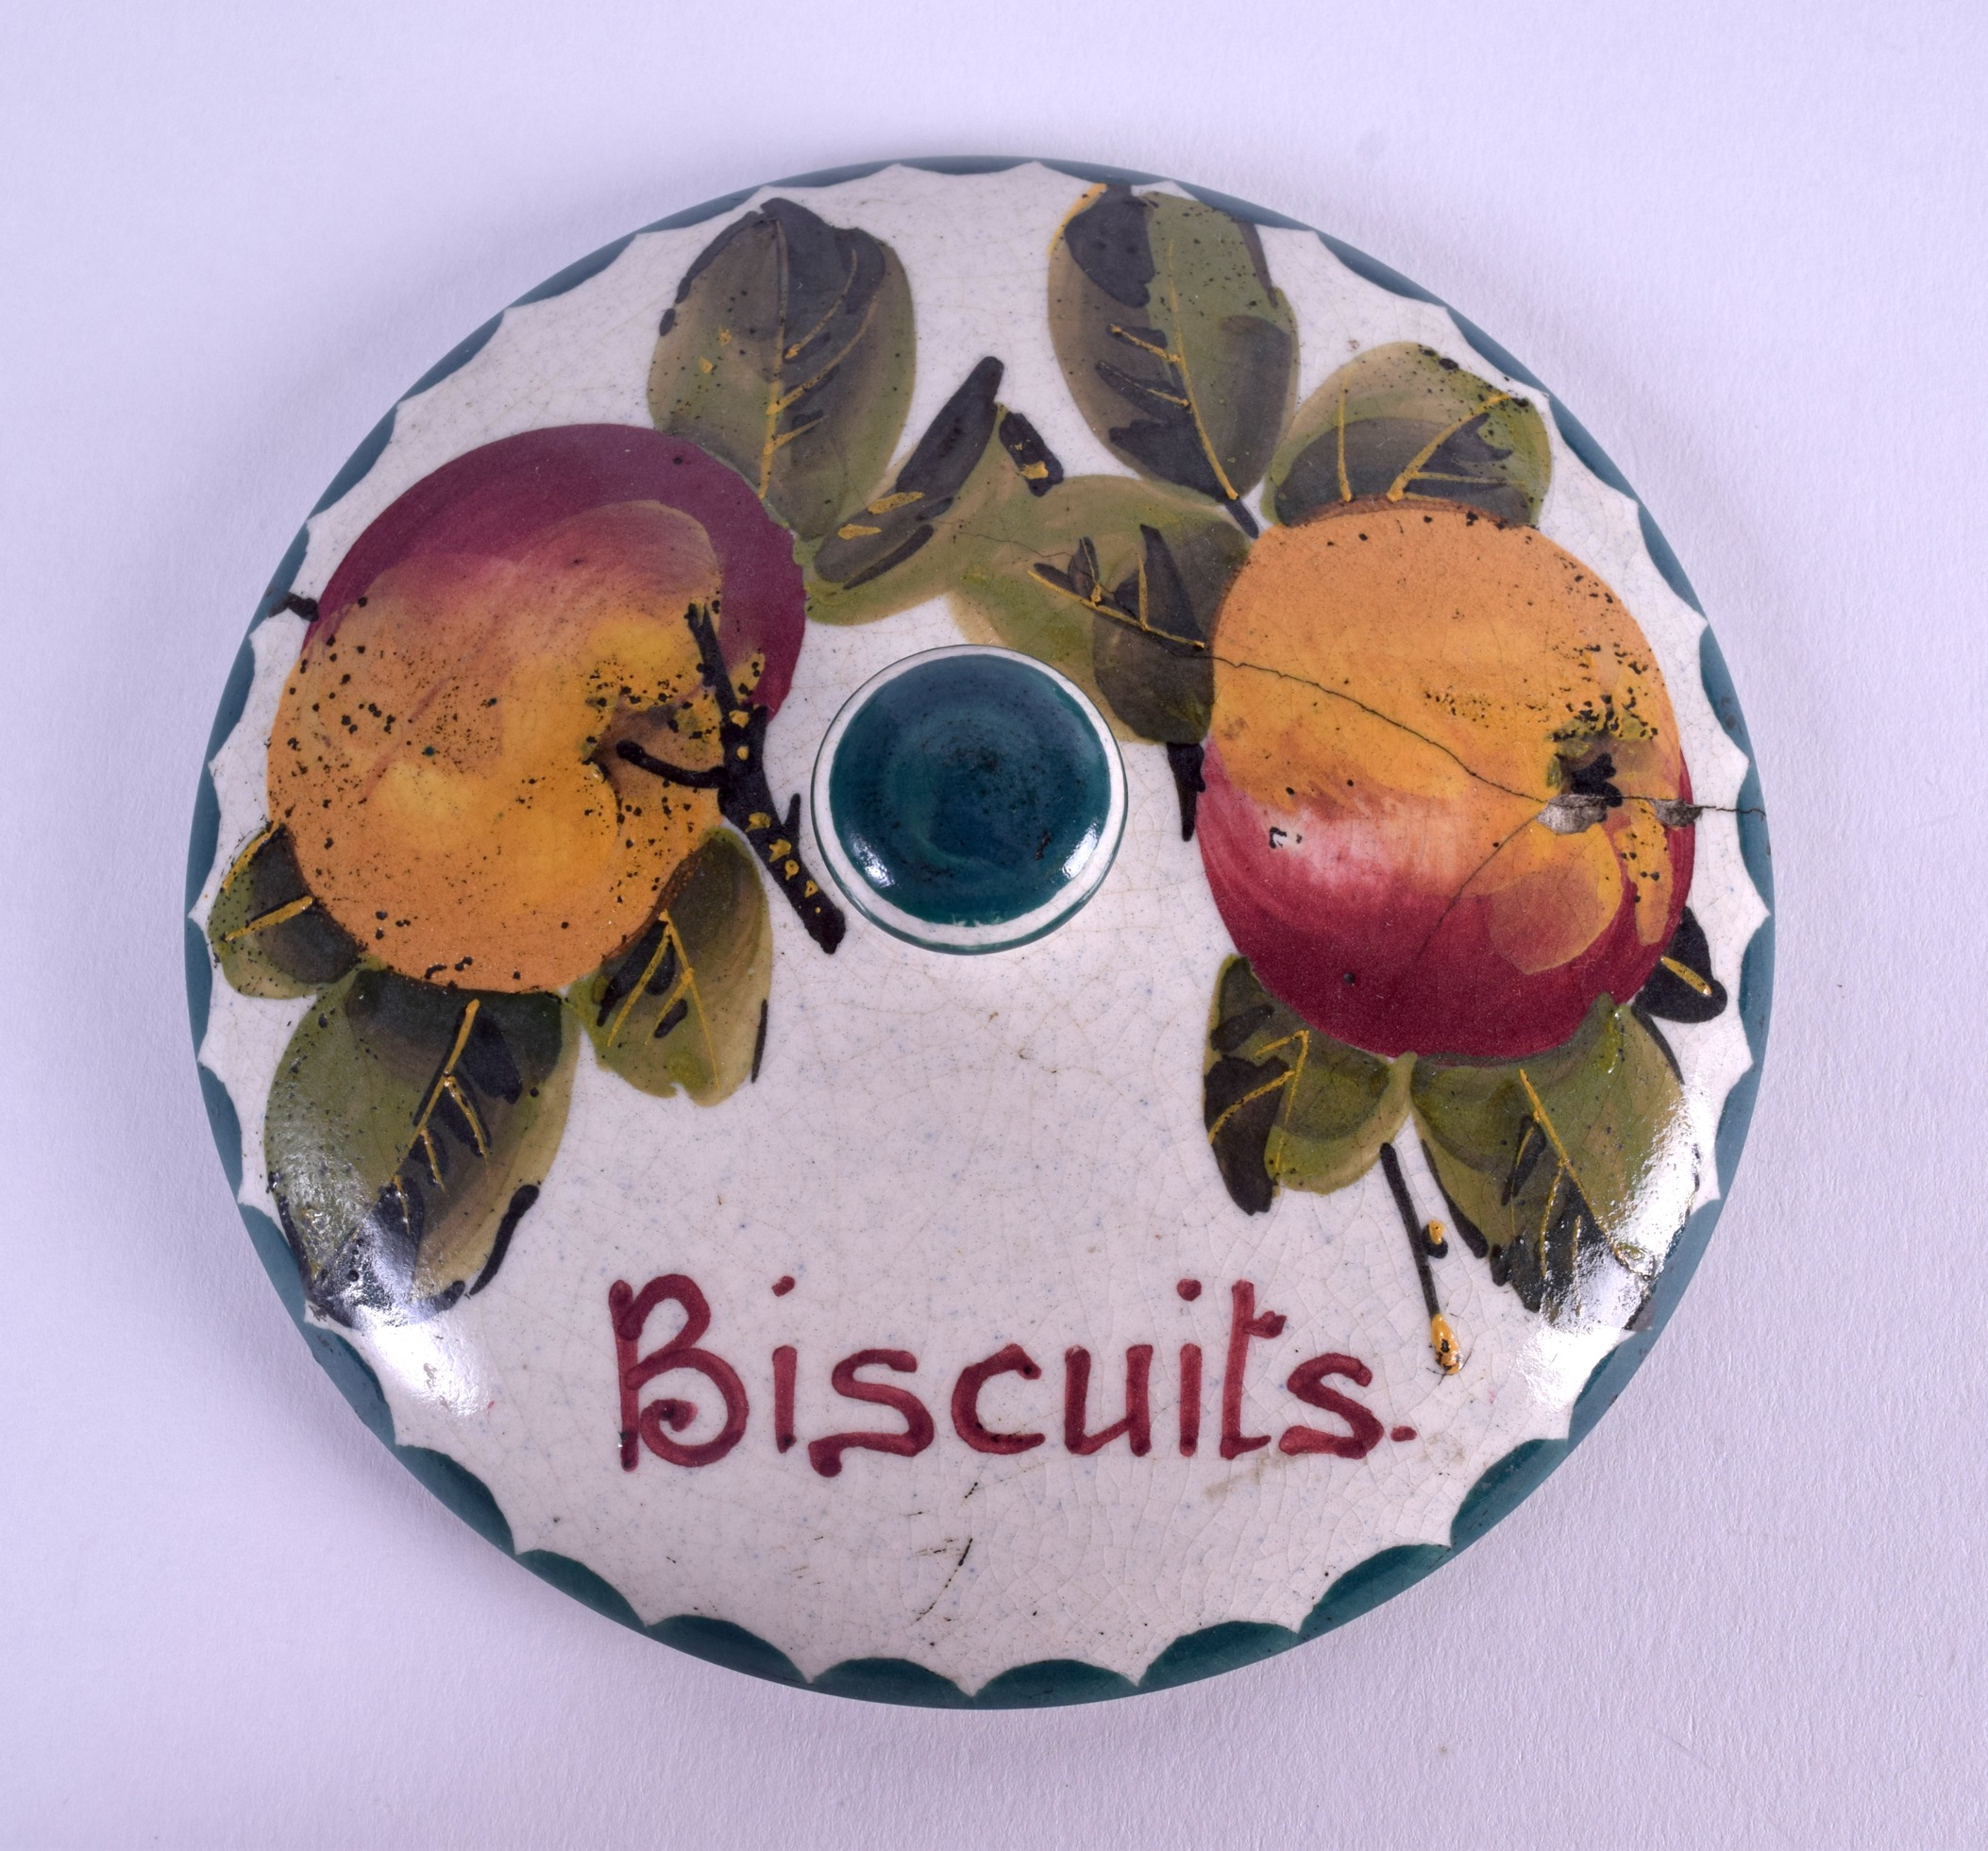 Lot 56 - A SCOTTISH WEMYSS POTTERY BISCUIT BOX AND COVER painted with fruit. 13 cm x 9 cm.